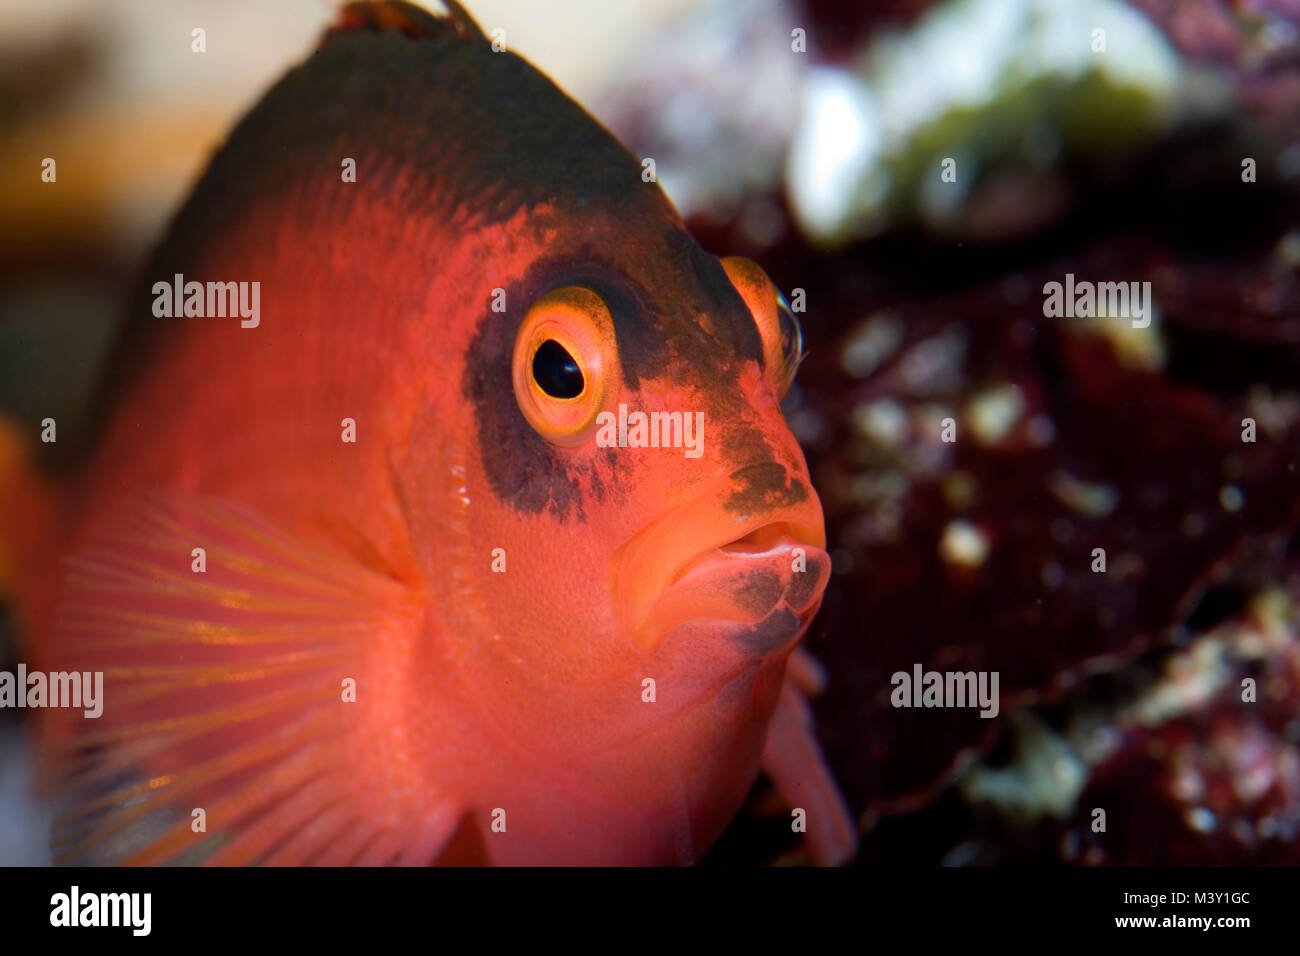 Flame hawkfish, Neocirrhites armatus. Is closely associated with particular corals, however it is not known if this - Stock Image